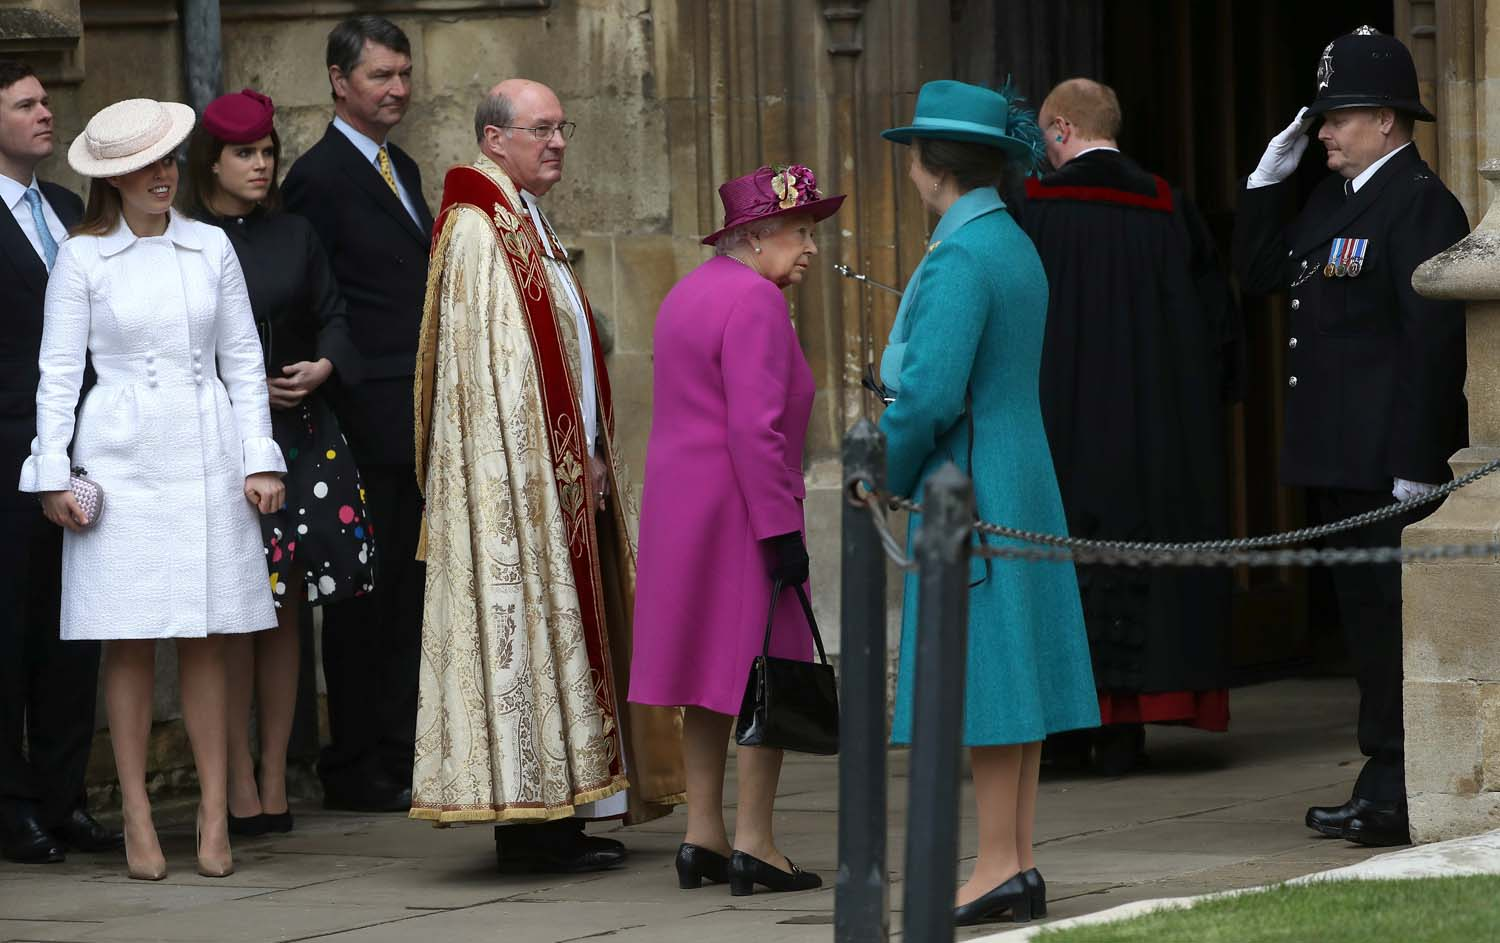 Britain's Queen Elizabeth and other members of Britain's royal family arrive for the annual Easter Sunday service at St George's Chapel at Windsor Castle in Windsor, Britain, April 1, 2018. REUTERS/Simon Dawson